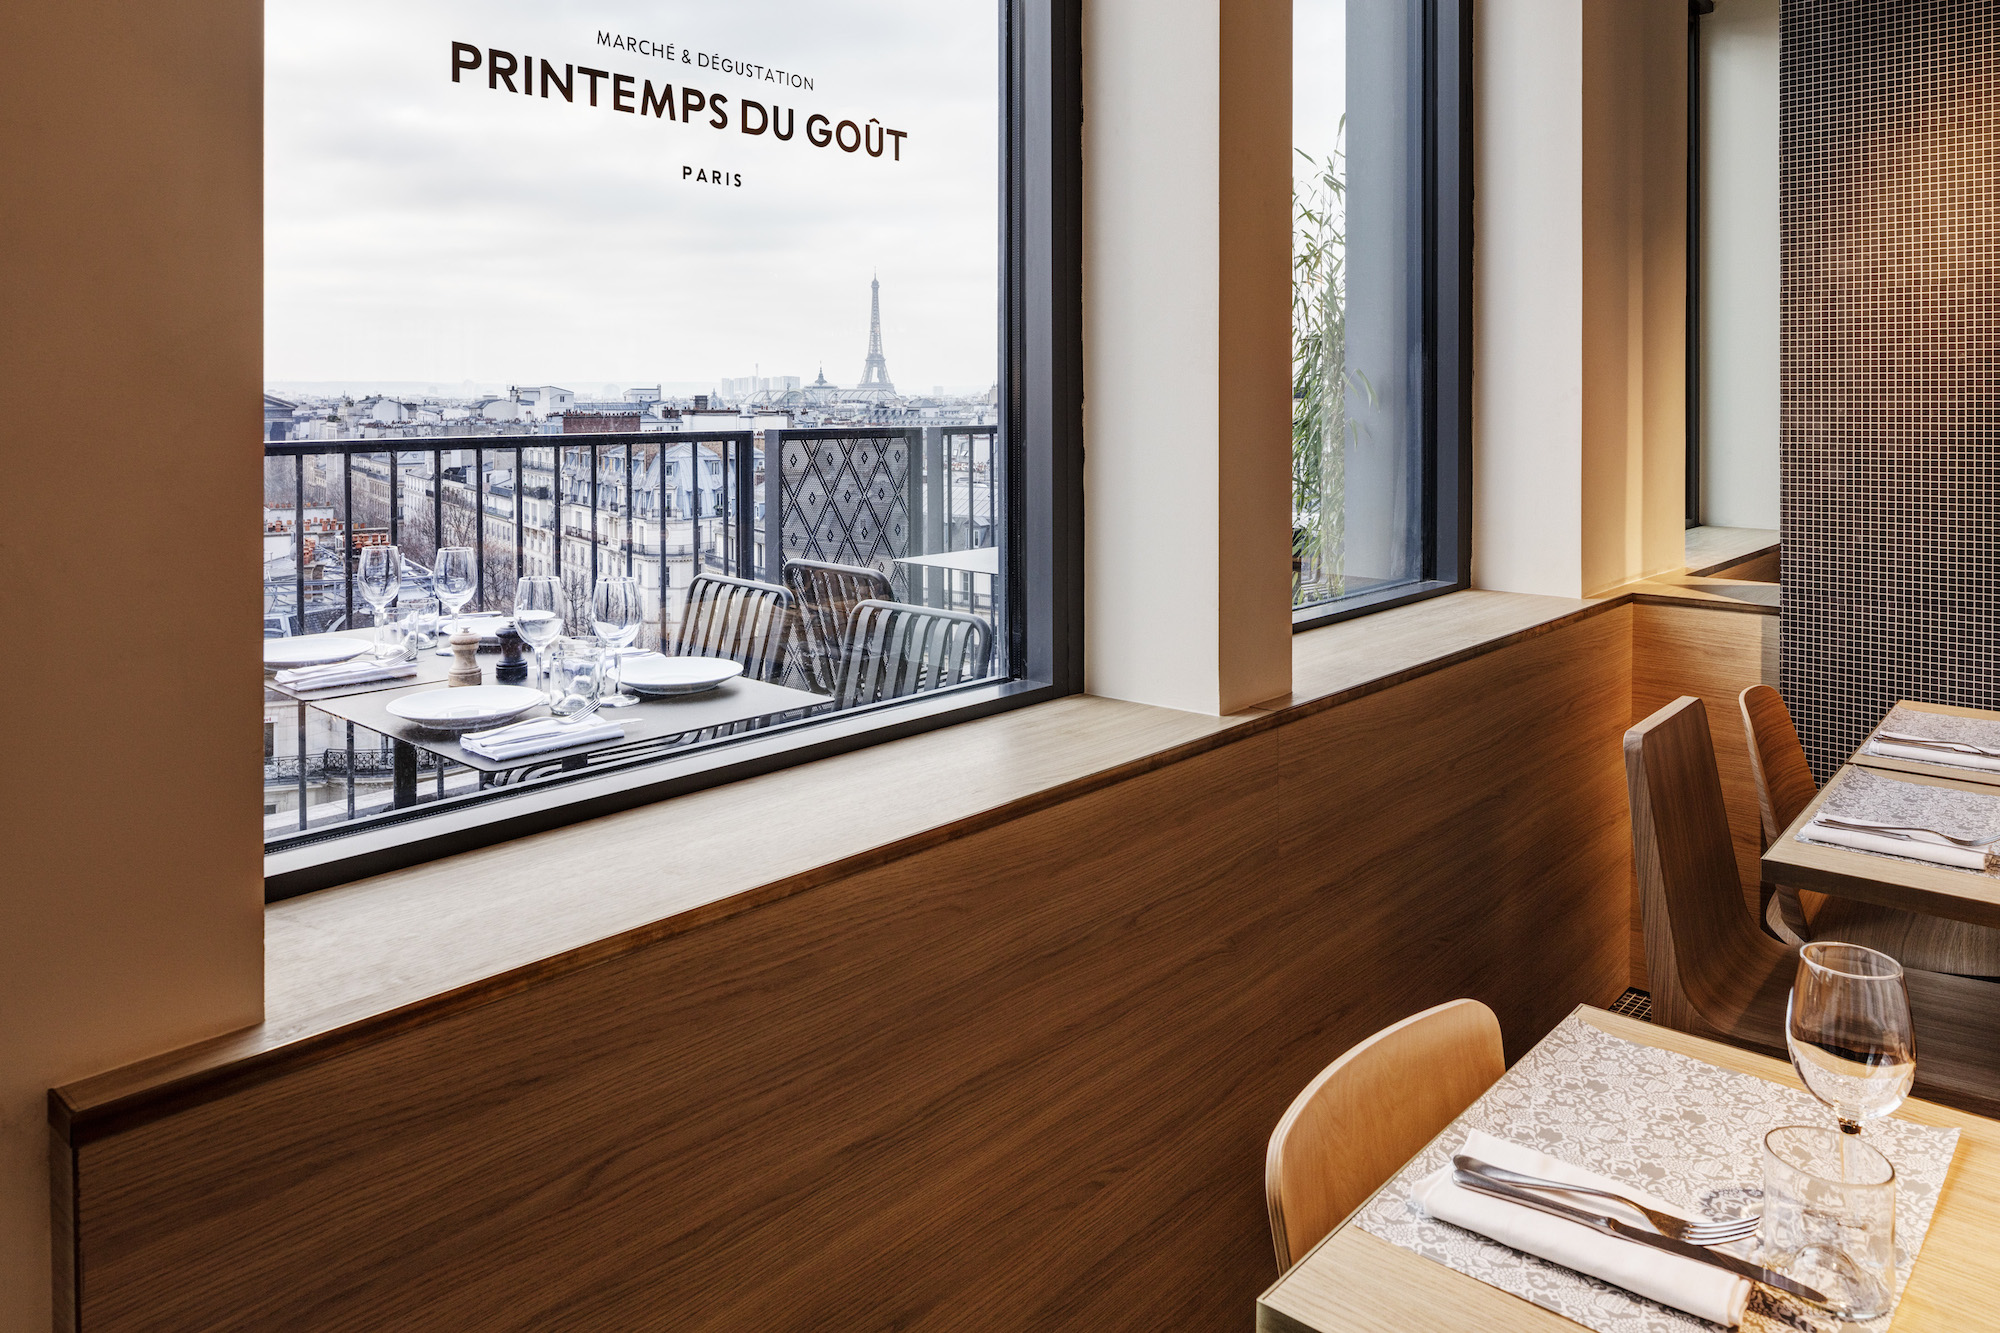 Foodie shopping destination in Paris, Pintemps du Goût has a rooftop terrace with Eiffel tower views.